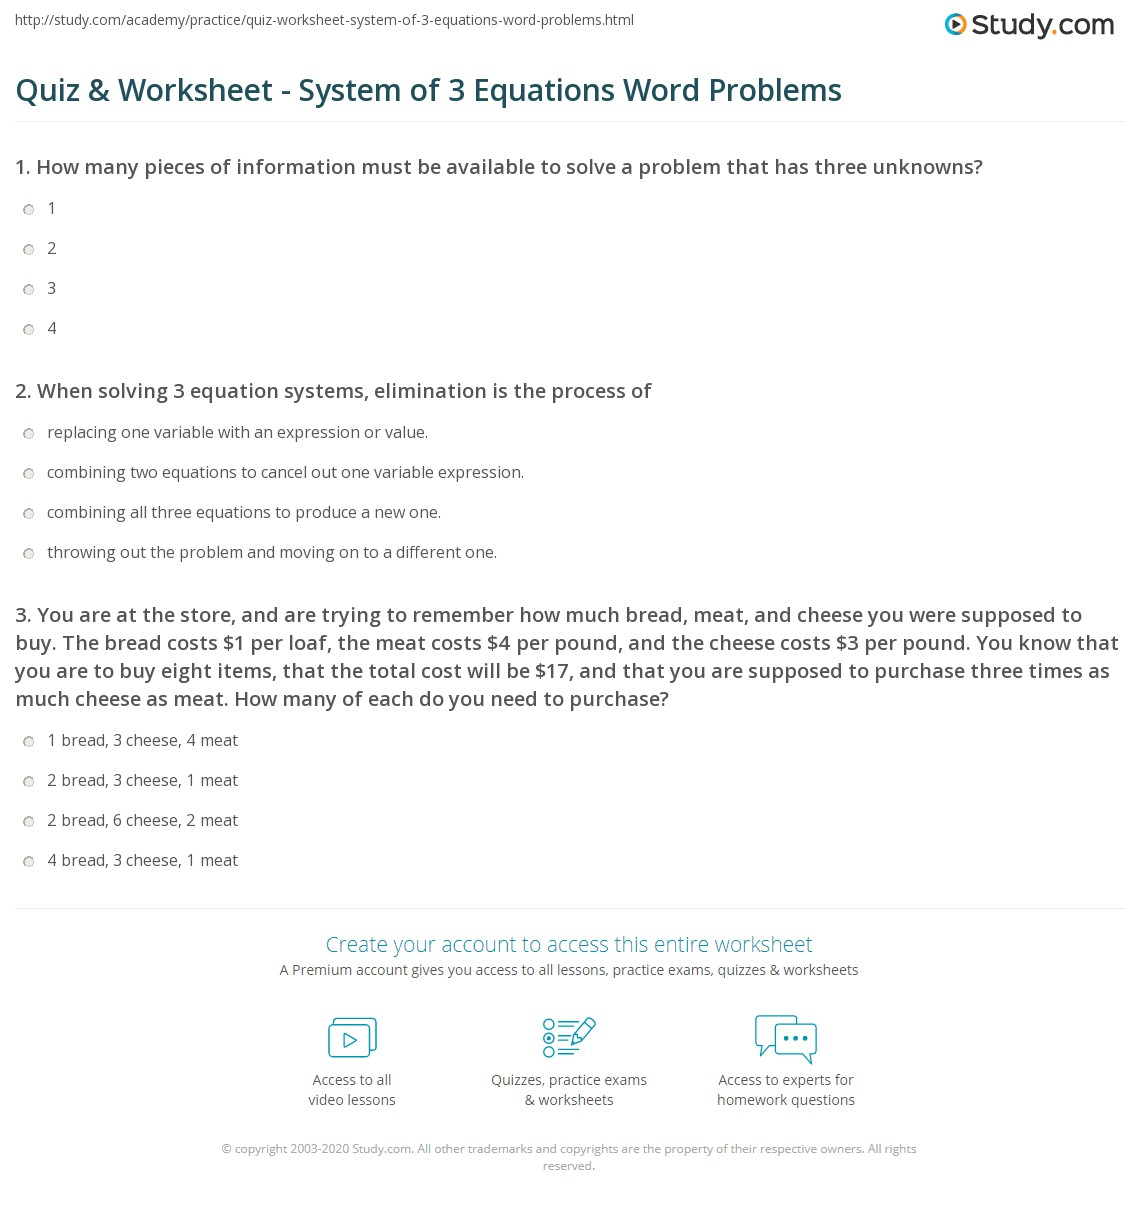 Quiz   Worksheet   System of 3 Equations Word Problems   Study besides Solving Systems Of Equations by Elimination Worksheet besides Subsution Word Problems Worksheets Systems Of Equations together with Graphing Linear Equations In Three Variables Worksheet   Free together with Free worksheets for evaluating expressions with variables  grades 6 in addition Solving Equations with Variables On Both Sides Worksheet 45 further Kuta Infinite Algebra 2 Arithmetic Series Elegant also Systems of Linear Equations    Three Variables    Easy  A besides Alge Worksheets   Free    monCoreSheets in addition Systems of Equations Maze Great worksheet   activity to strengthen in addition Chapter 3 Solving Linear Equations Answers Math Linear Equations In also  further Math Worksheets Equations With Variables   antihrap as well Simultaneous Equations One Linear One Quadratic Worksheets by together with  additionally . on simultaneous equations 3 unknowns worksheet